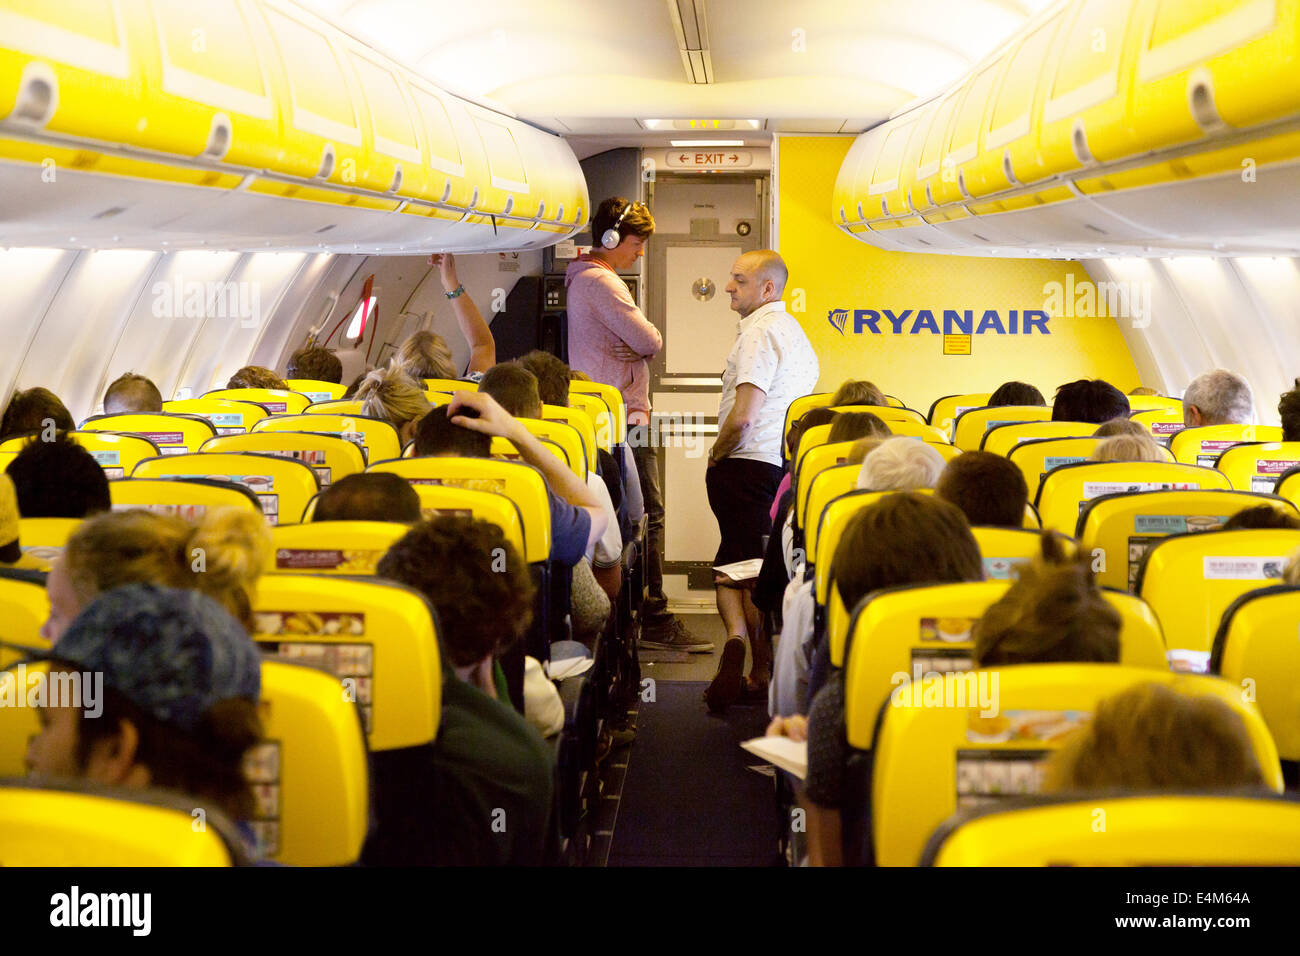 Passengers in a queue for the toilet during a flight, Ryanair plane cabin interior - Stock Image